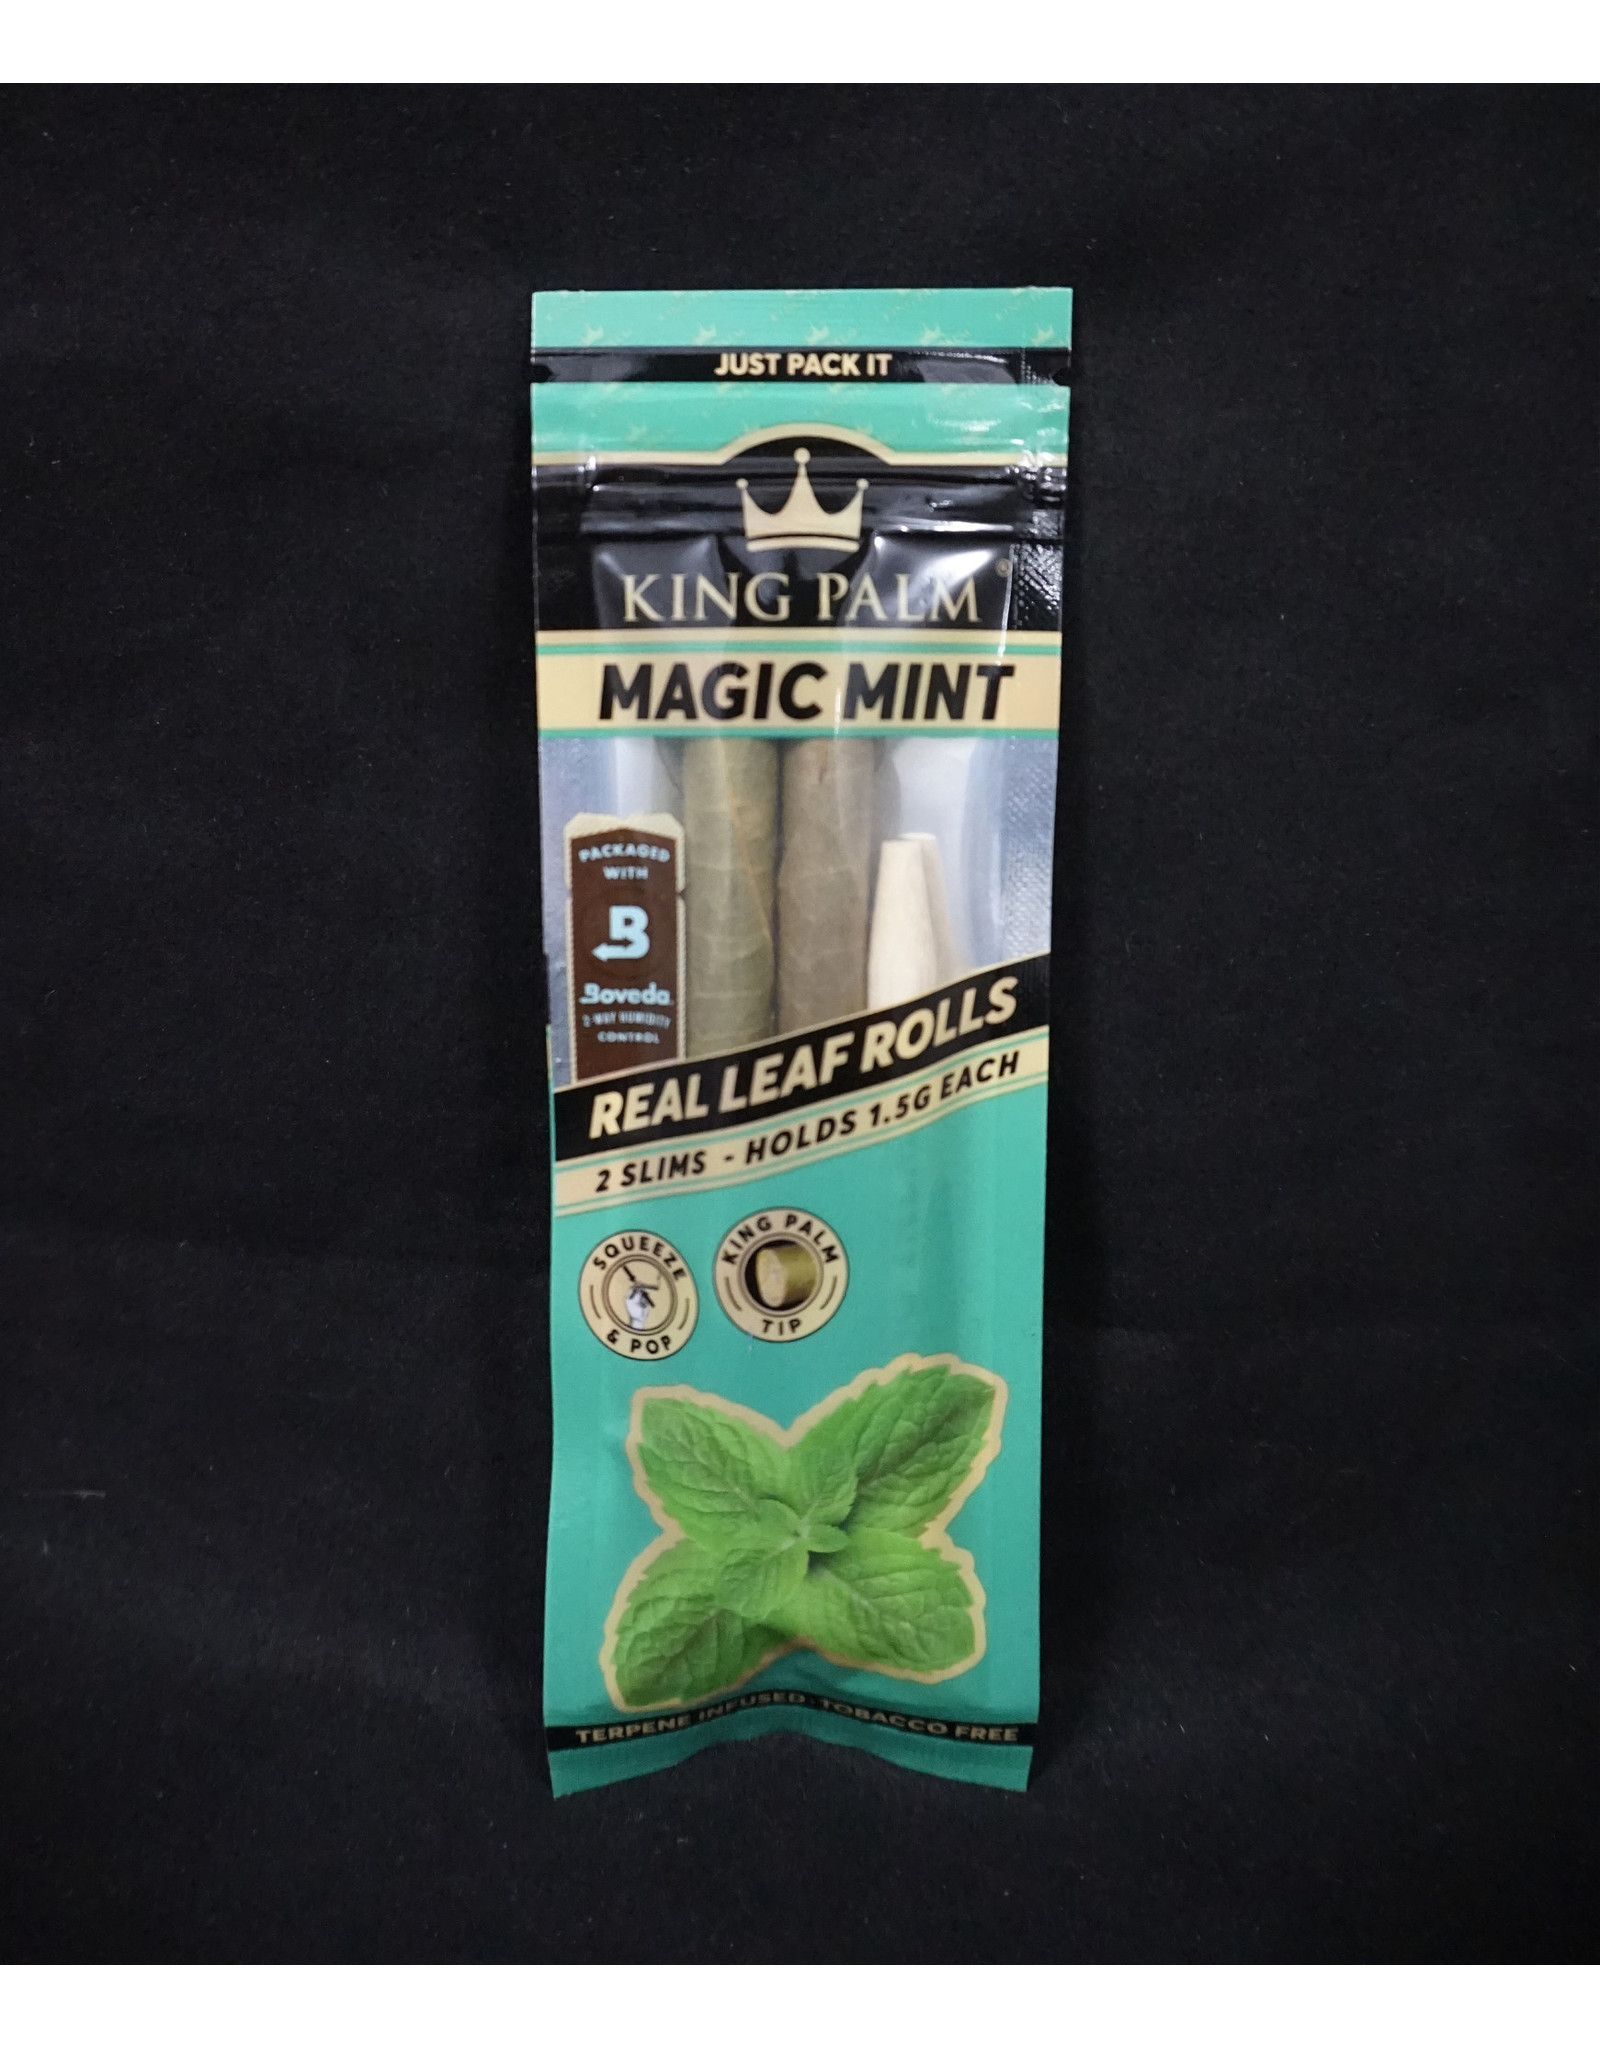 King Palm King Palm Pre-Roll Wraps - 2pk Slim Magic Mint